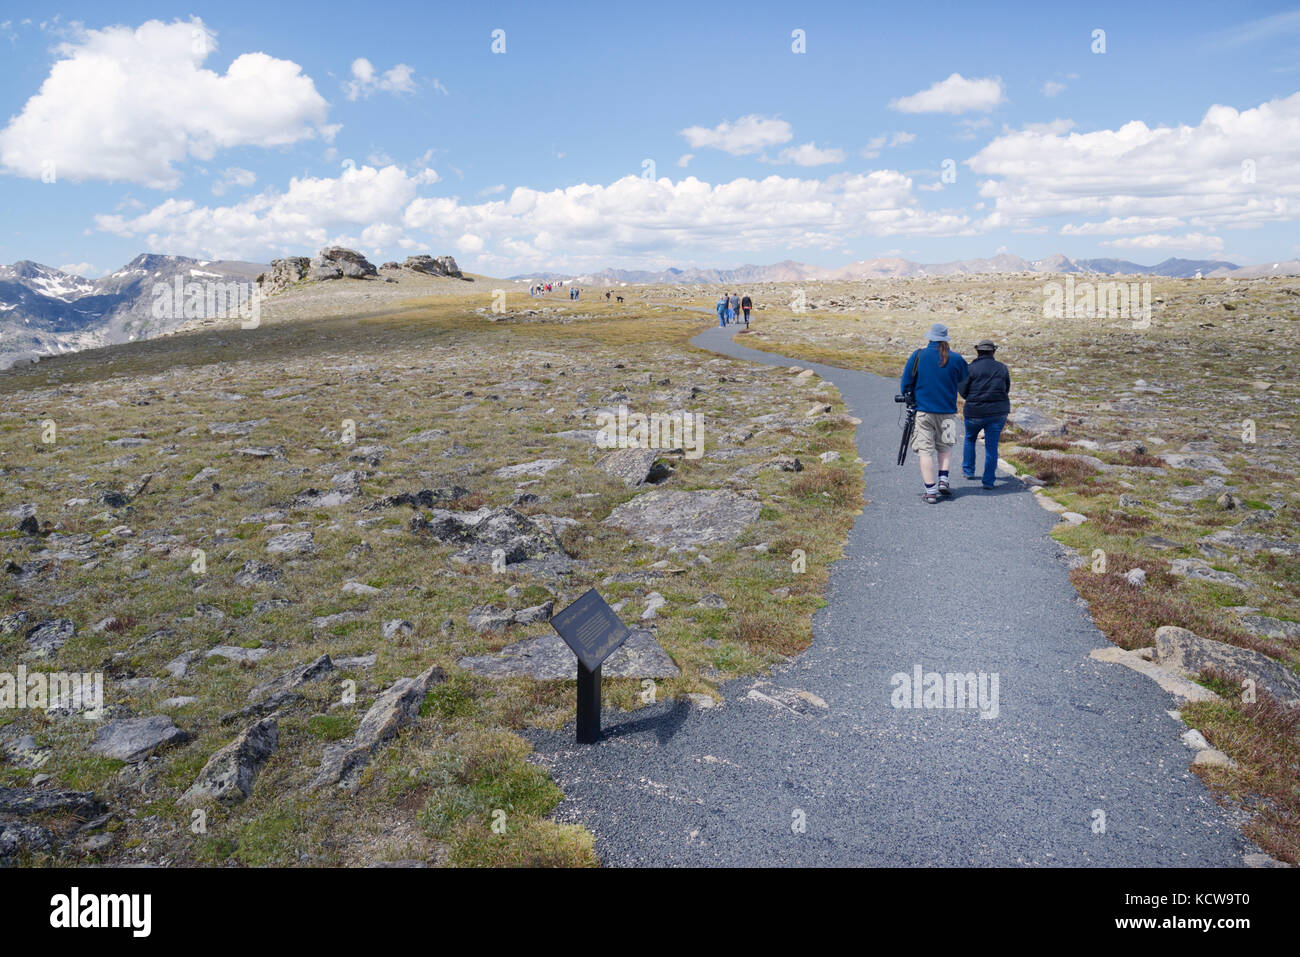 Tundra Communities Trail, off of Trail Ridge Road, Rocky Mountain National Park, Colorado - Stock Image